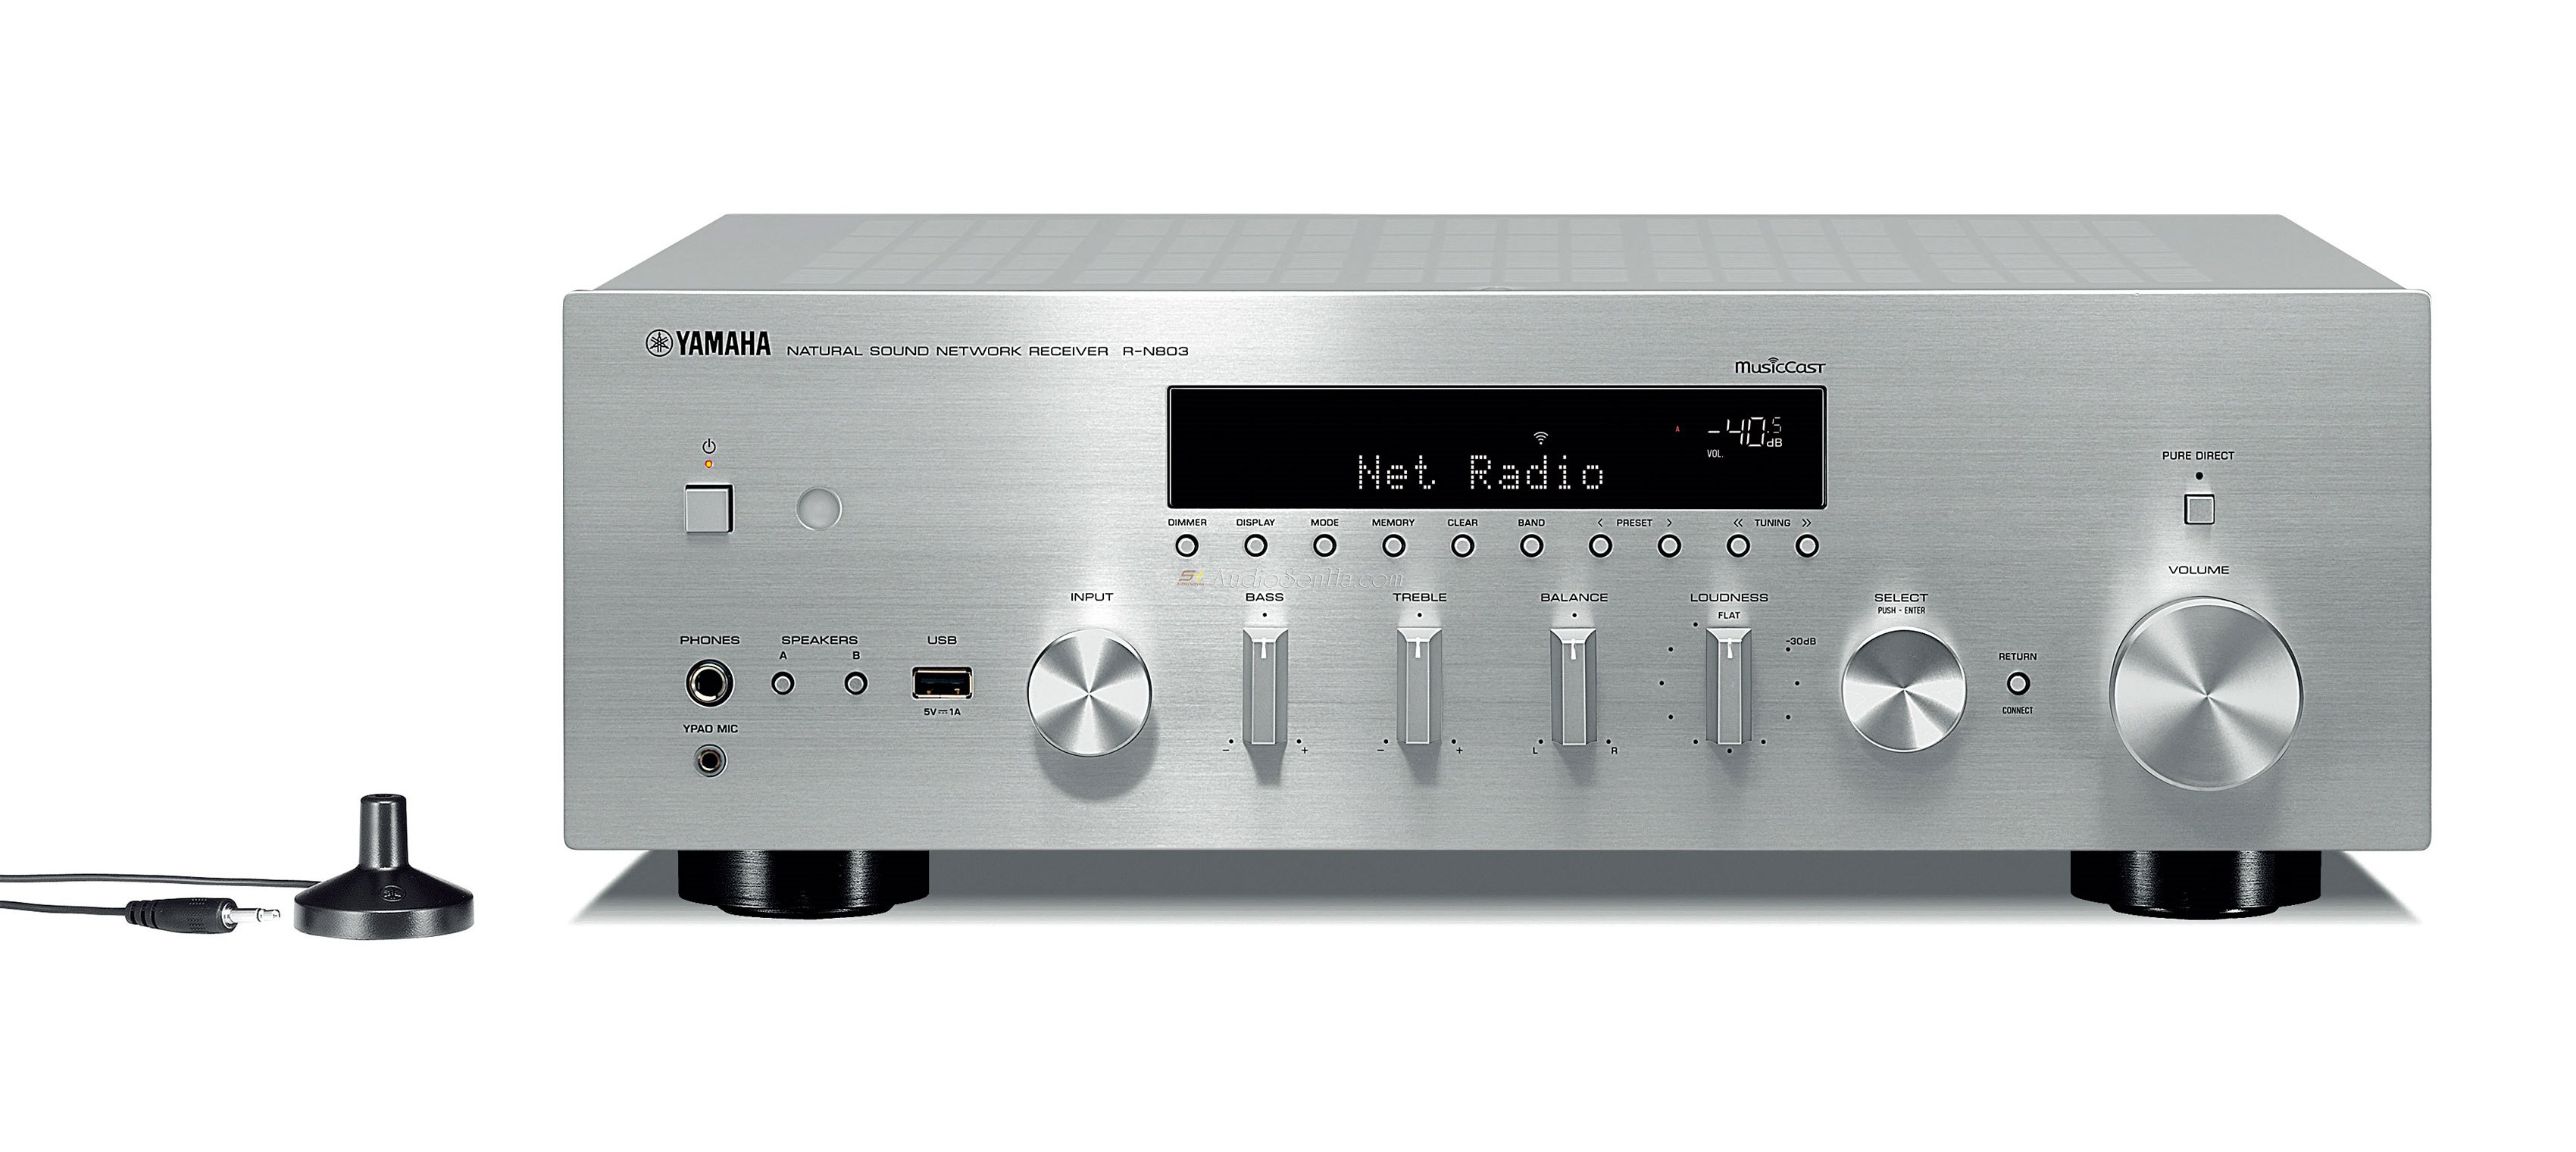 Yamaha R-N803 Network Receiver